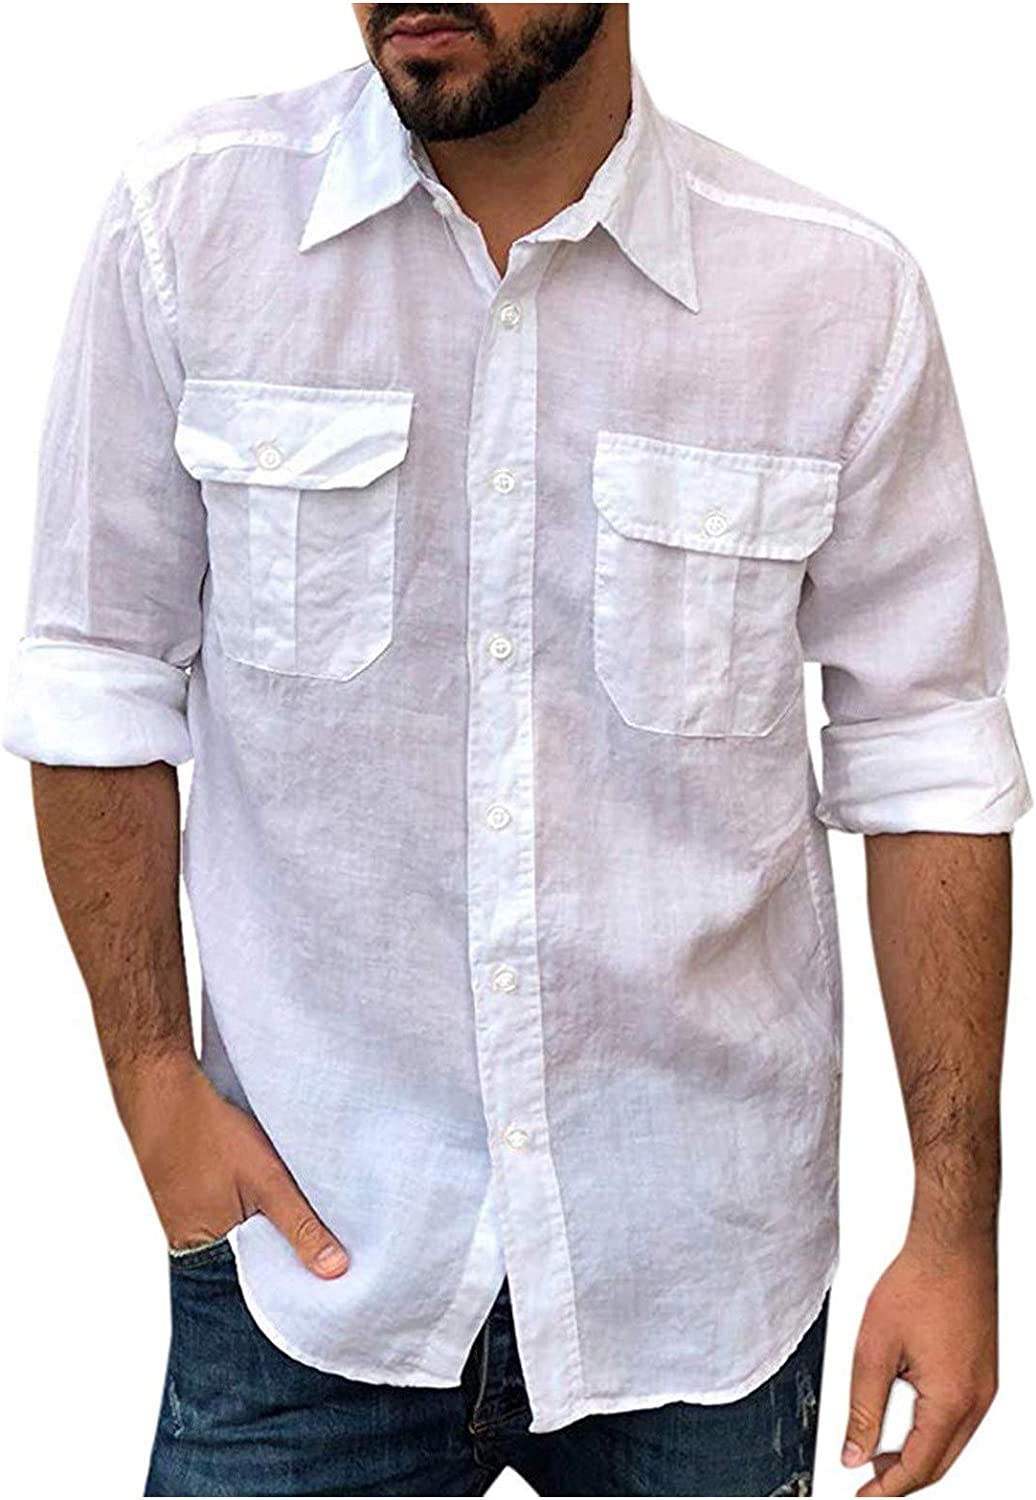 WOCACHI Fall Shirts for Mens, Men's Button-down Turn-Down Collar Long Sleeve Shirt Casual Work Tops with Pockets